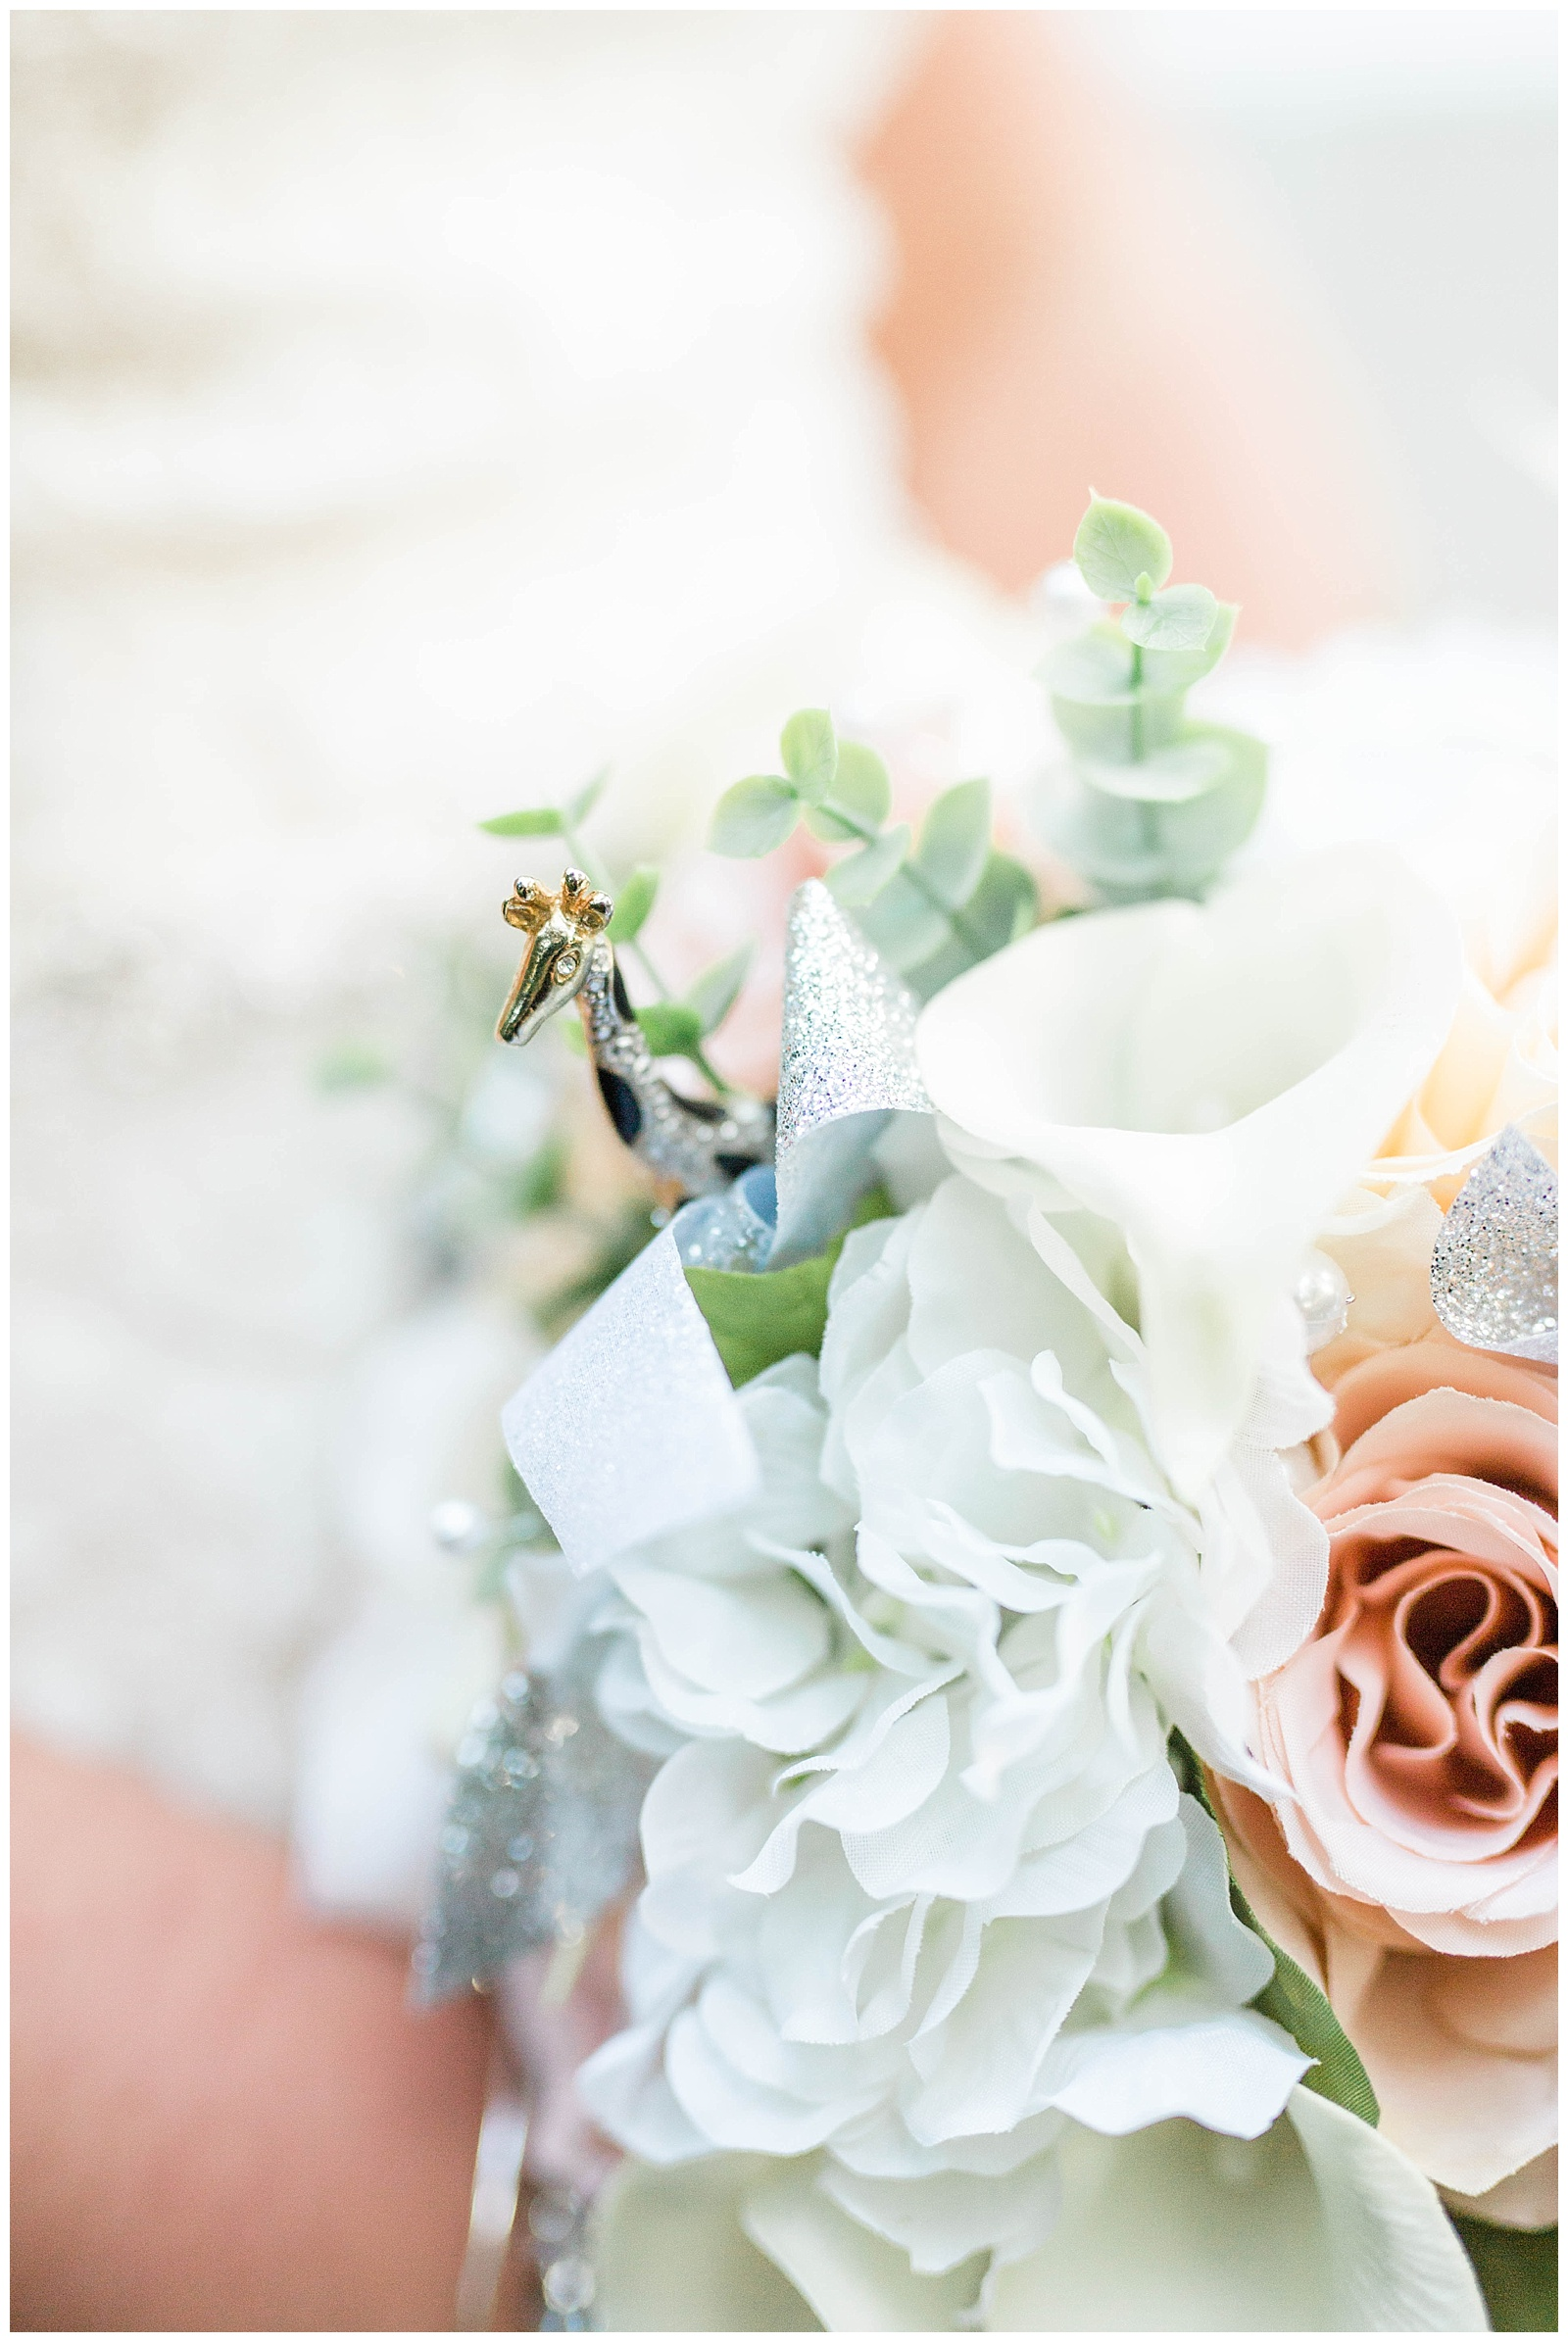 You will see giraffe's in some of these picture and you may wonder.. why. Well, Giraffe's were Liz's mom's favorite animal! I absolutely LOVE how Liz had every detail covered and found so many ways to incorporate her mom throughout her entire day!